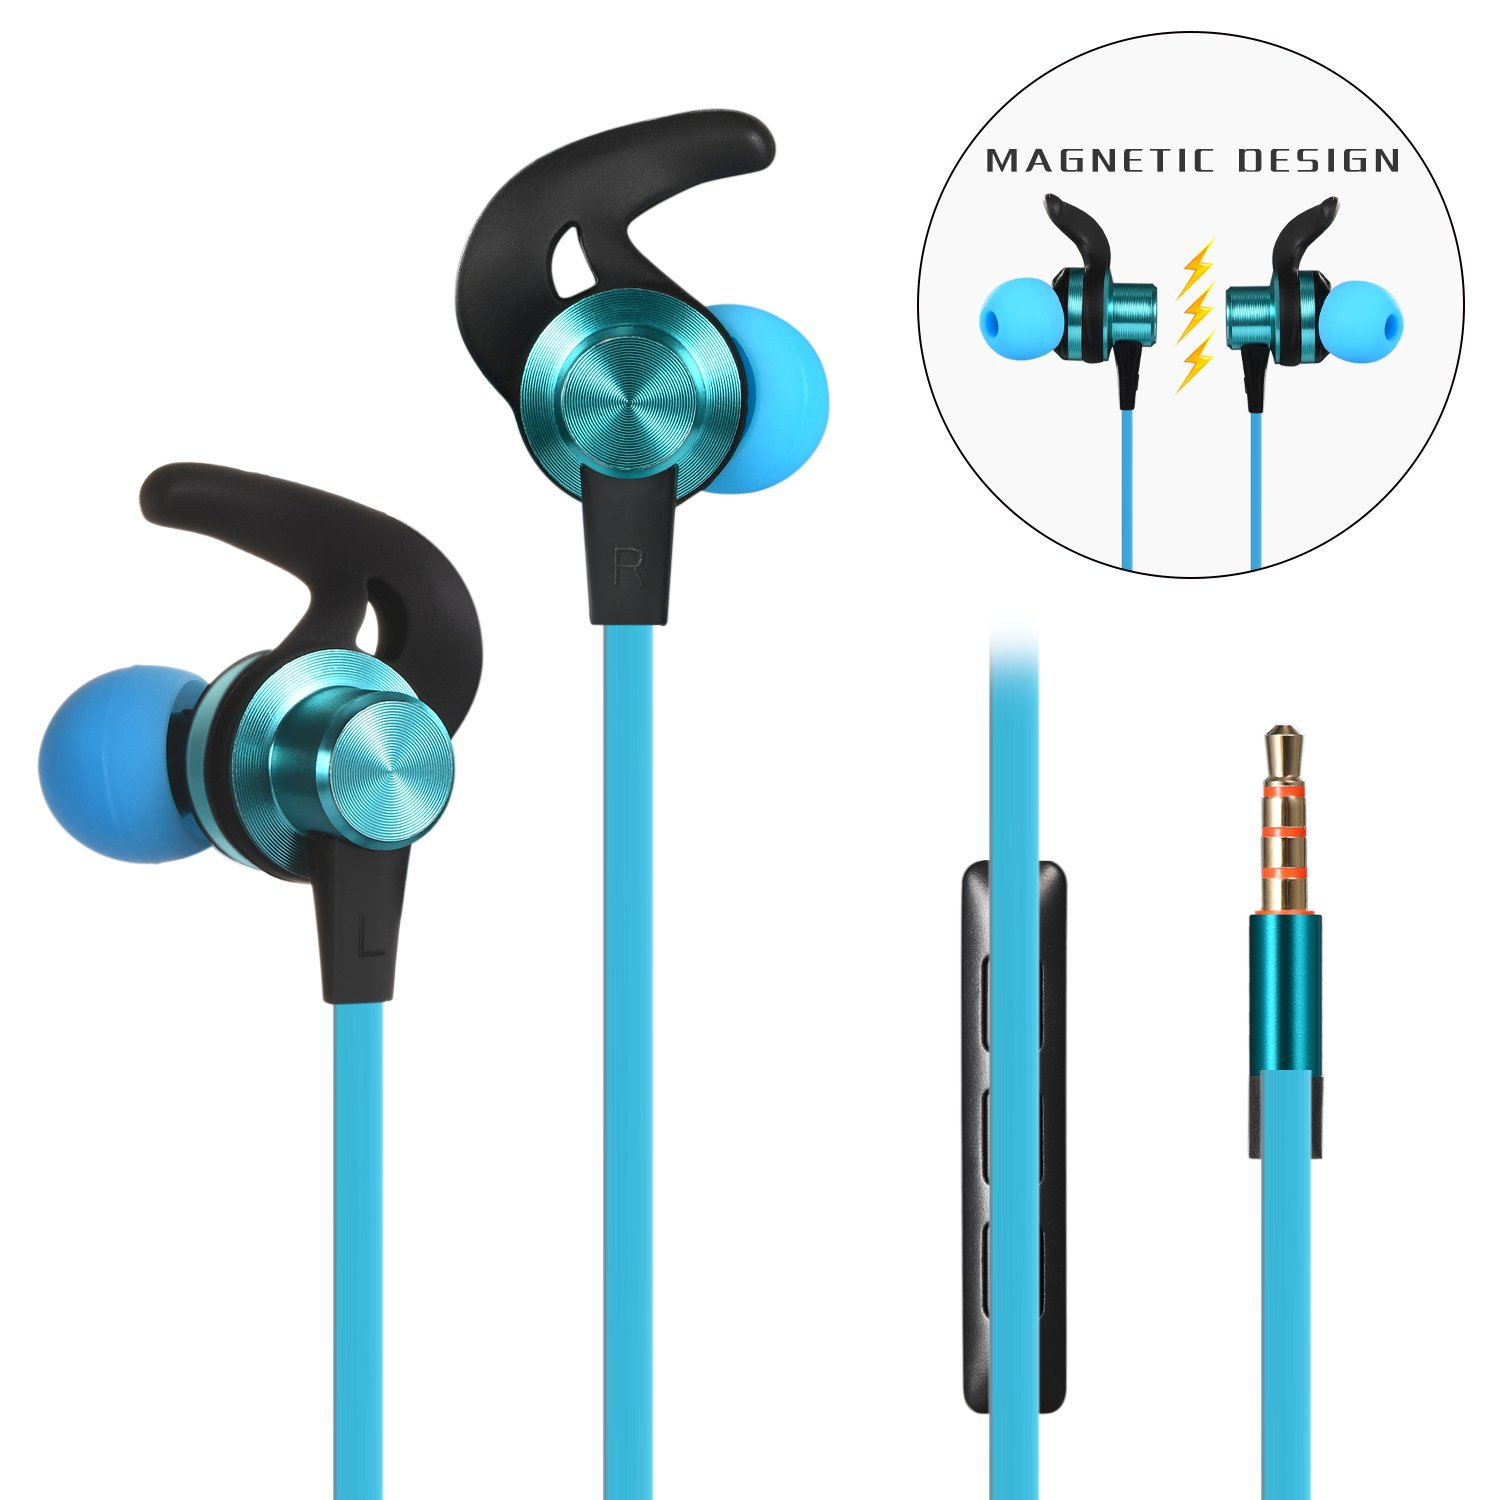 in-Ear Earphones, Wired Earbuds with Mic and Volume Control, Anlyso Magnetic Metal Stereo Bass Noise Cancelling Headphones Sports Sweatproof Headsets for Gym Running Workout Blue